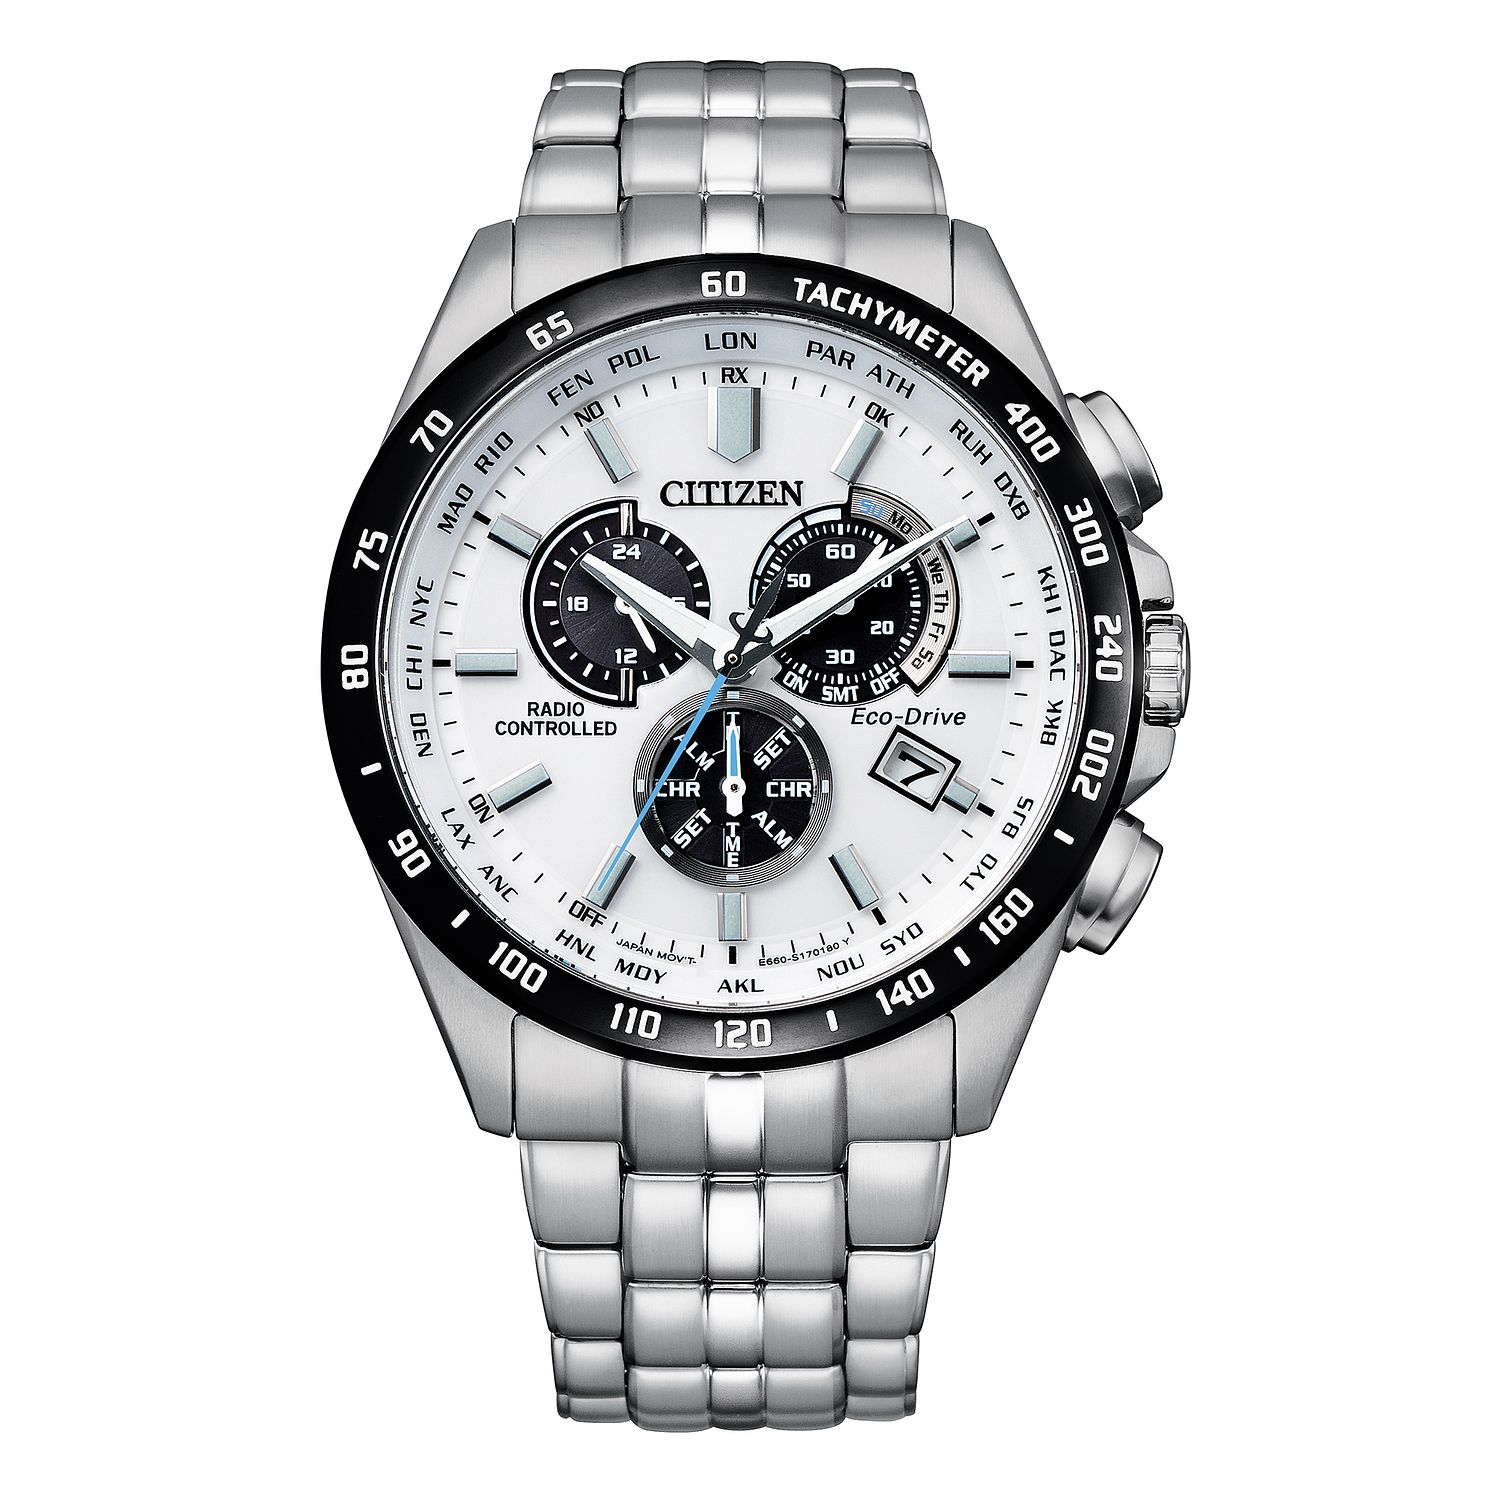 Citizen Atomic Time Men's Stainless Steel Bracelet Watch - Product number 1016938